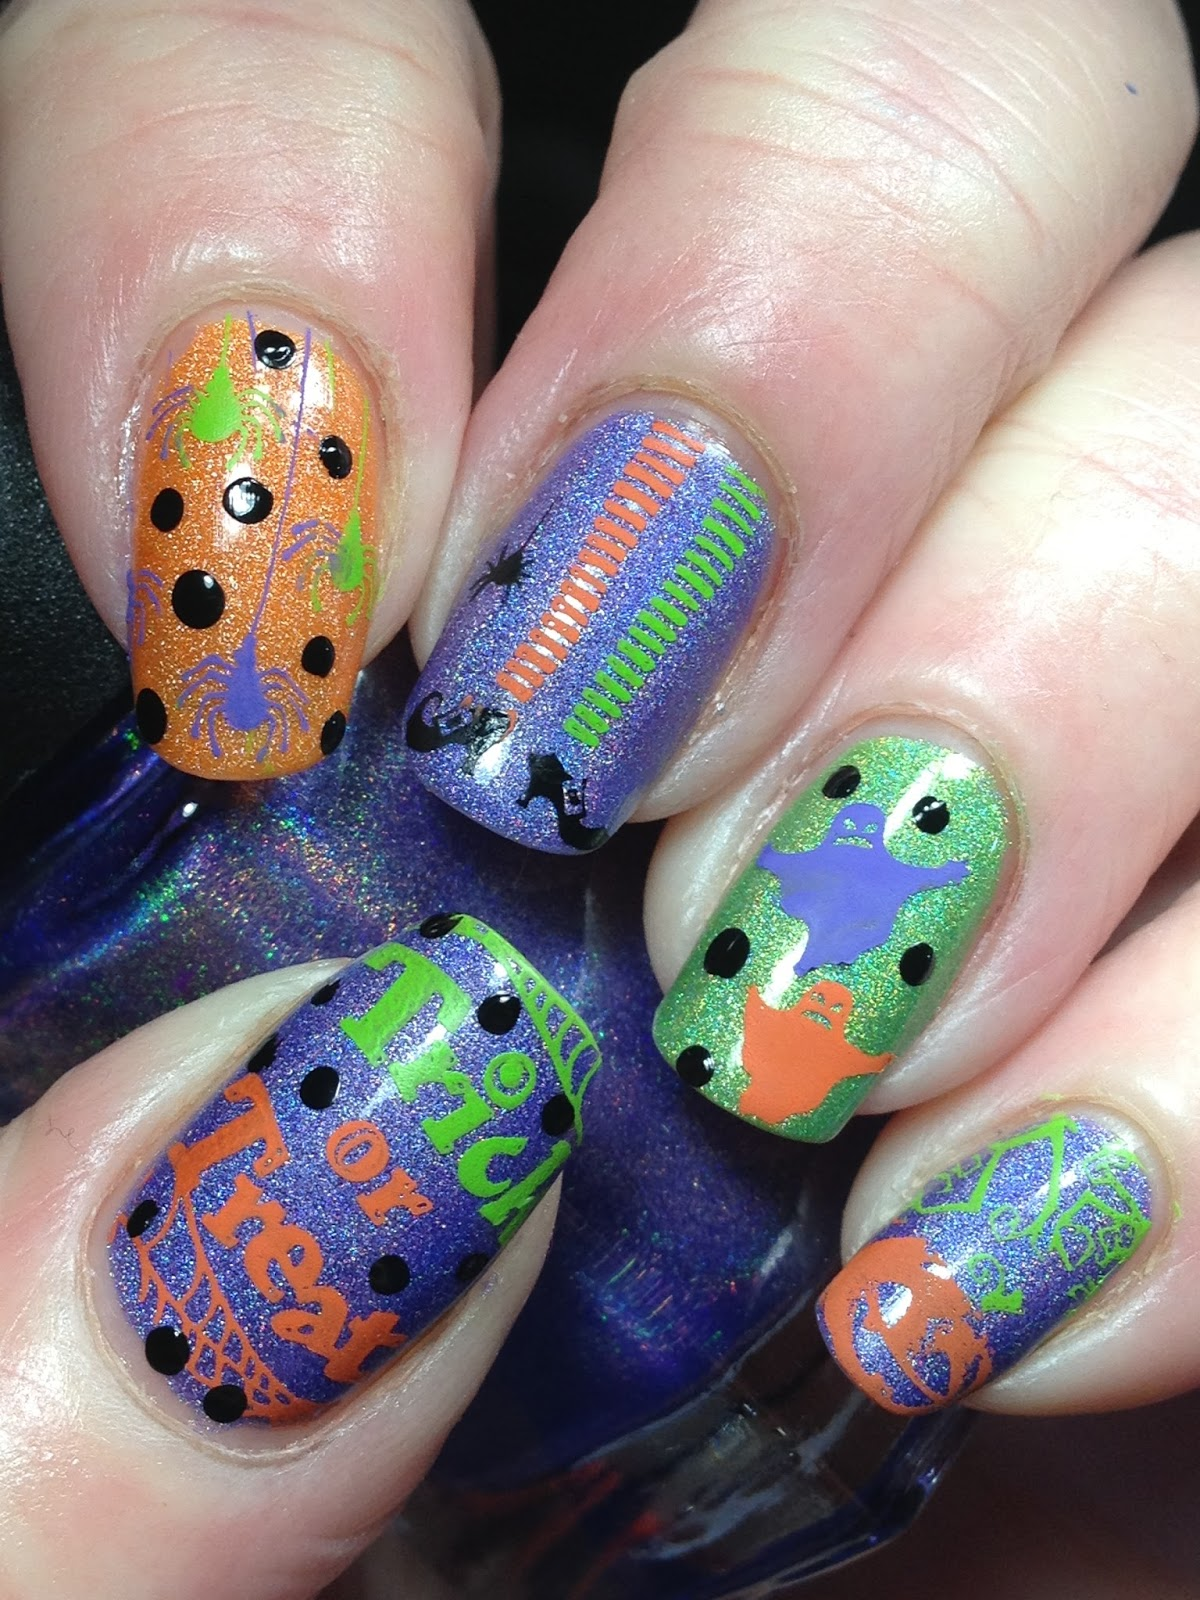 Canadian Nail Fanatic: 40 Great Nail Art Ideas - Orange, Purple ...